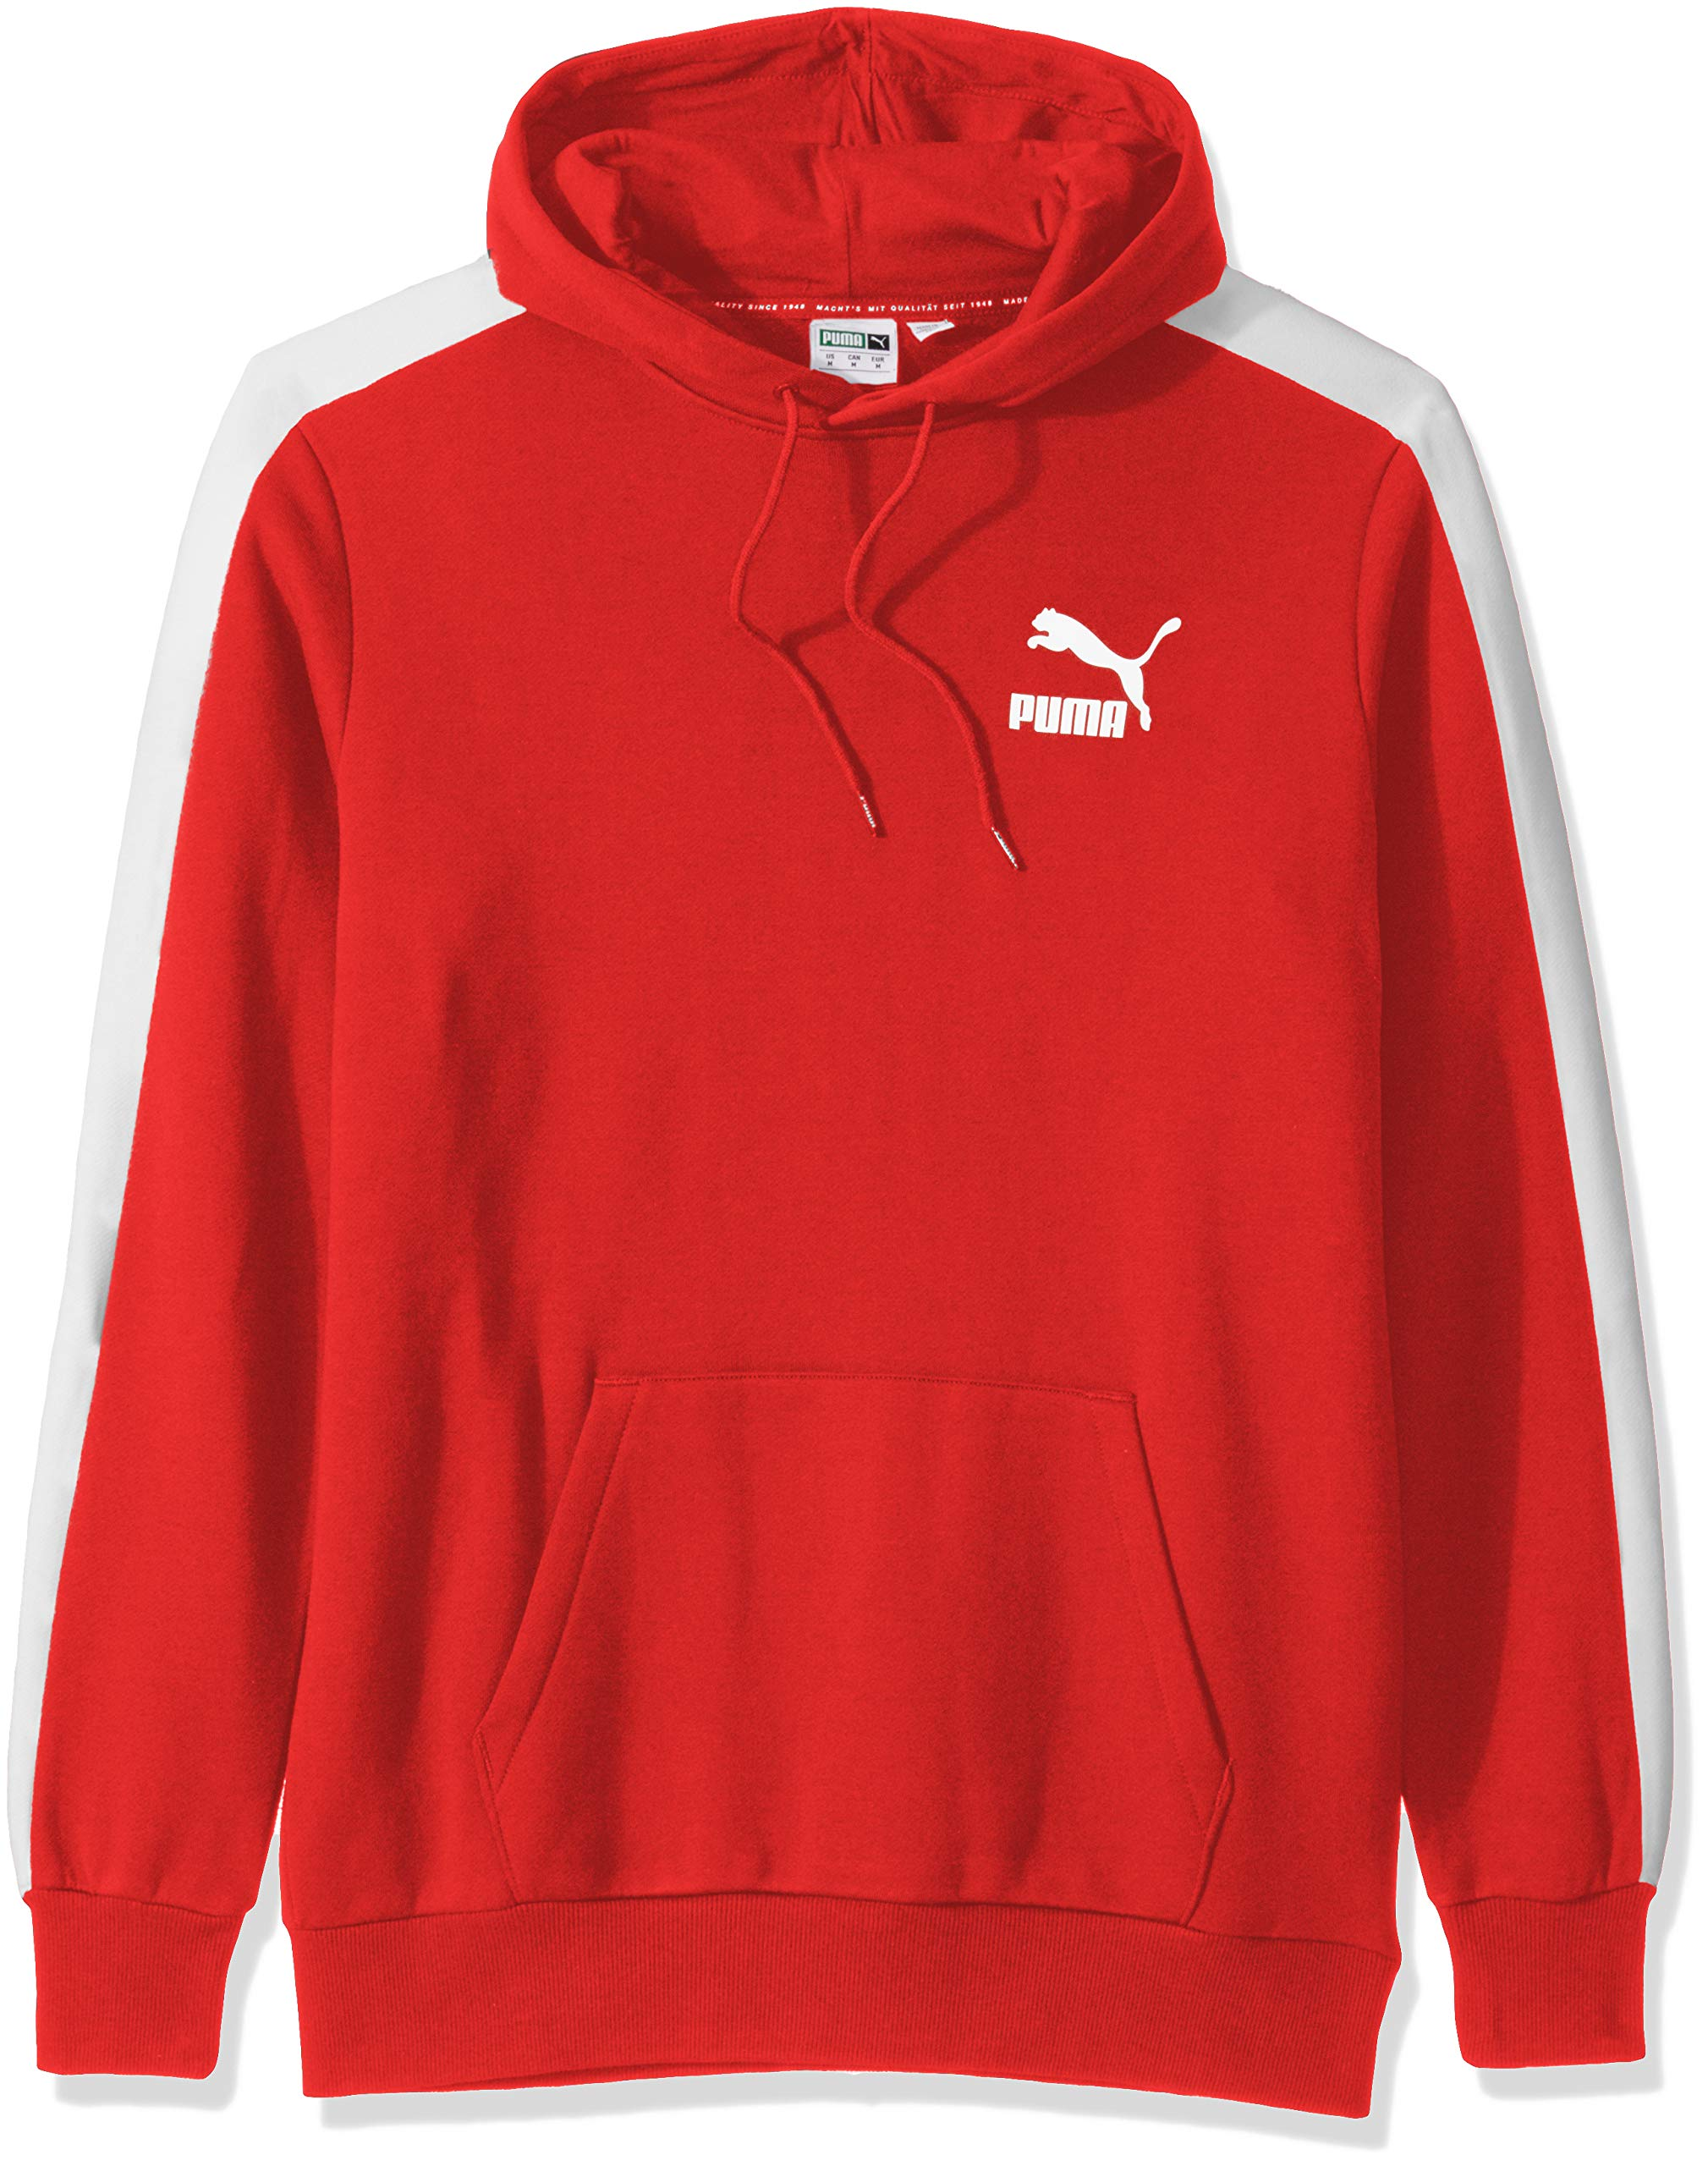 PUMA Men's Iconic T7 Hoody Fleece